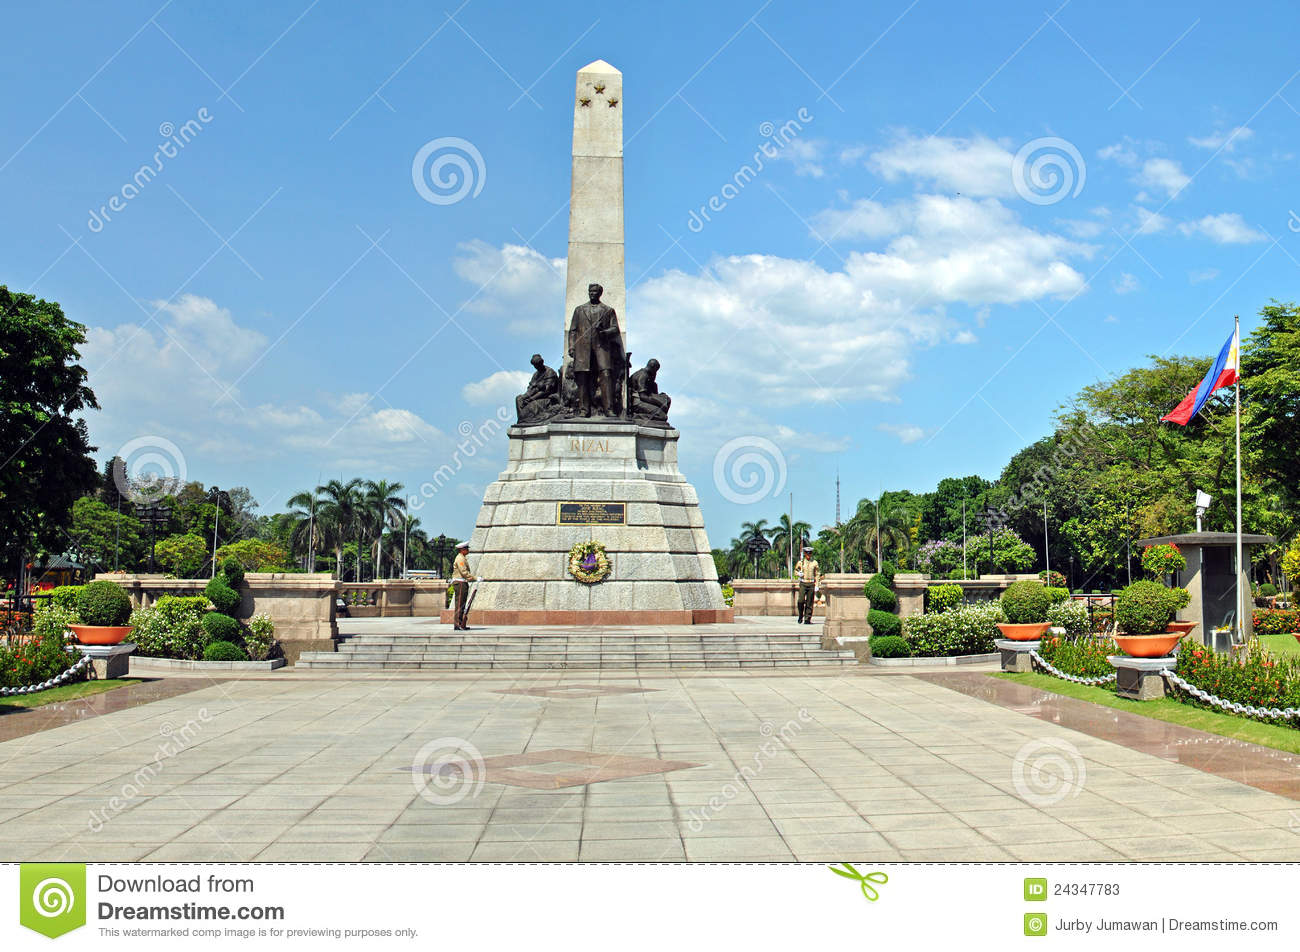 Jose Rizal (1861-1896), the national hero of the Philippines